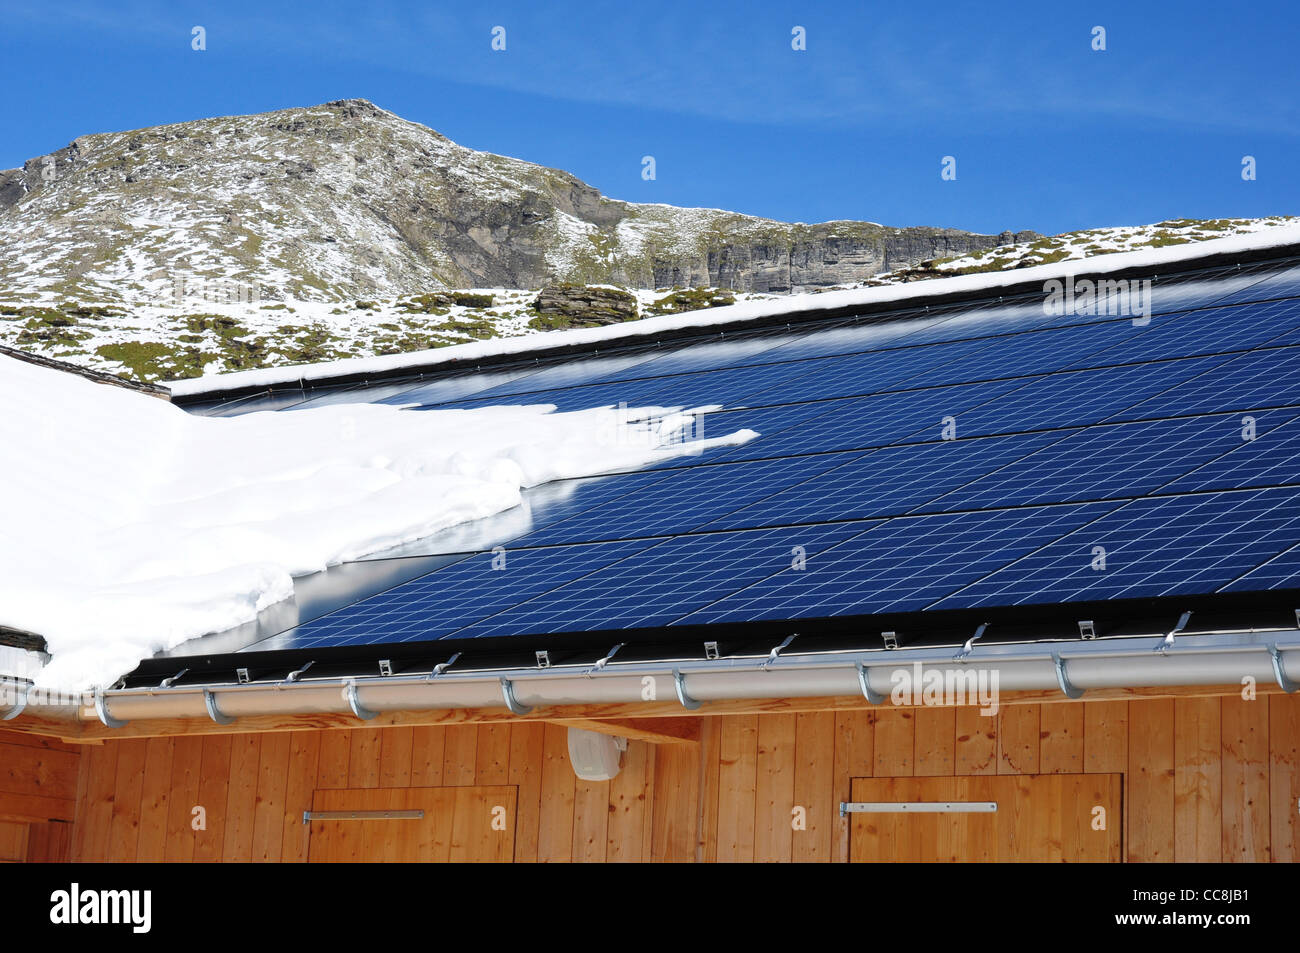 Solar panels on roof of building after snow fall, Switzerland - Stock Image